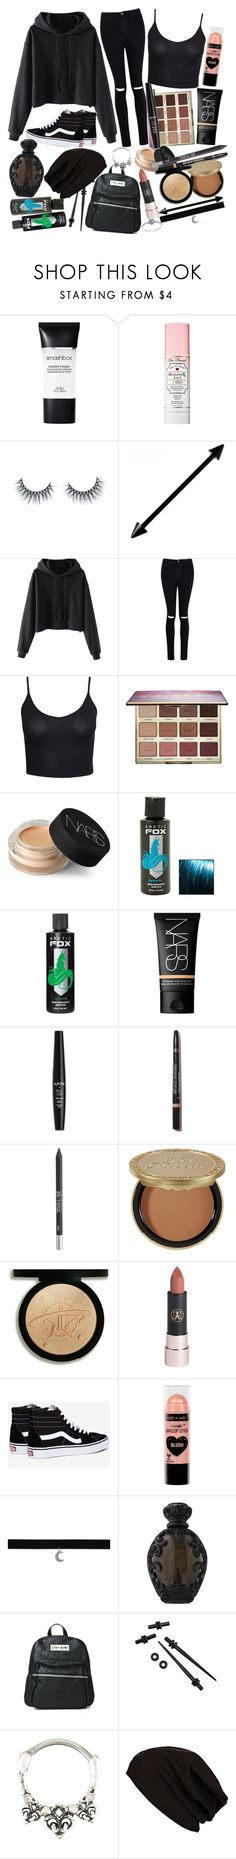 """""""I need you to tell me everything will be alright, to chase away the voices in the night. When they call my name, have I gone insane?"""" by thelyricsmatter ❤ liked on Polyvore featuring Smashbox, Too Faced Cosmetics, Unicorn Lashes, Boohoo, New Look, tarte, NARS Cosmetics, Hot Topic, NYX and Urban Decay"""